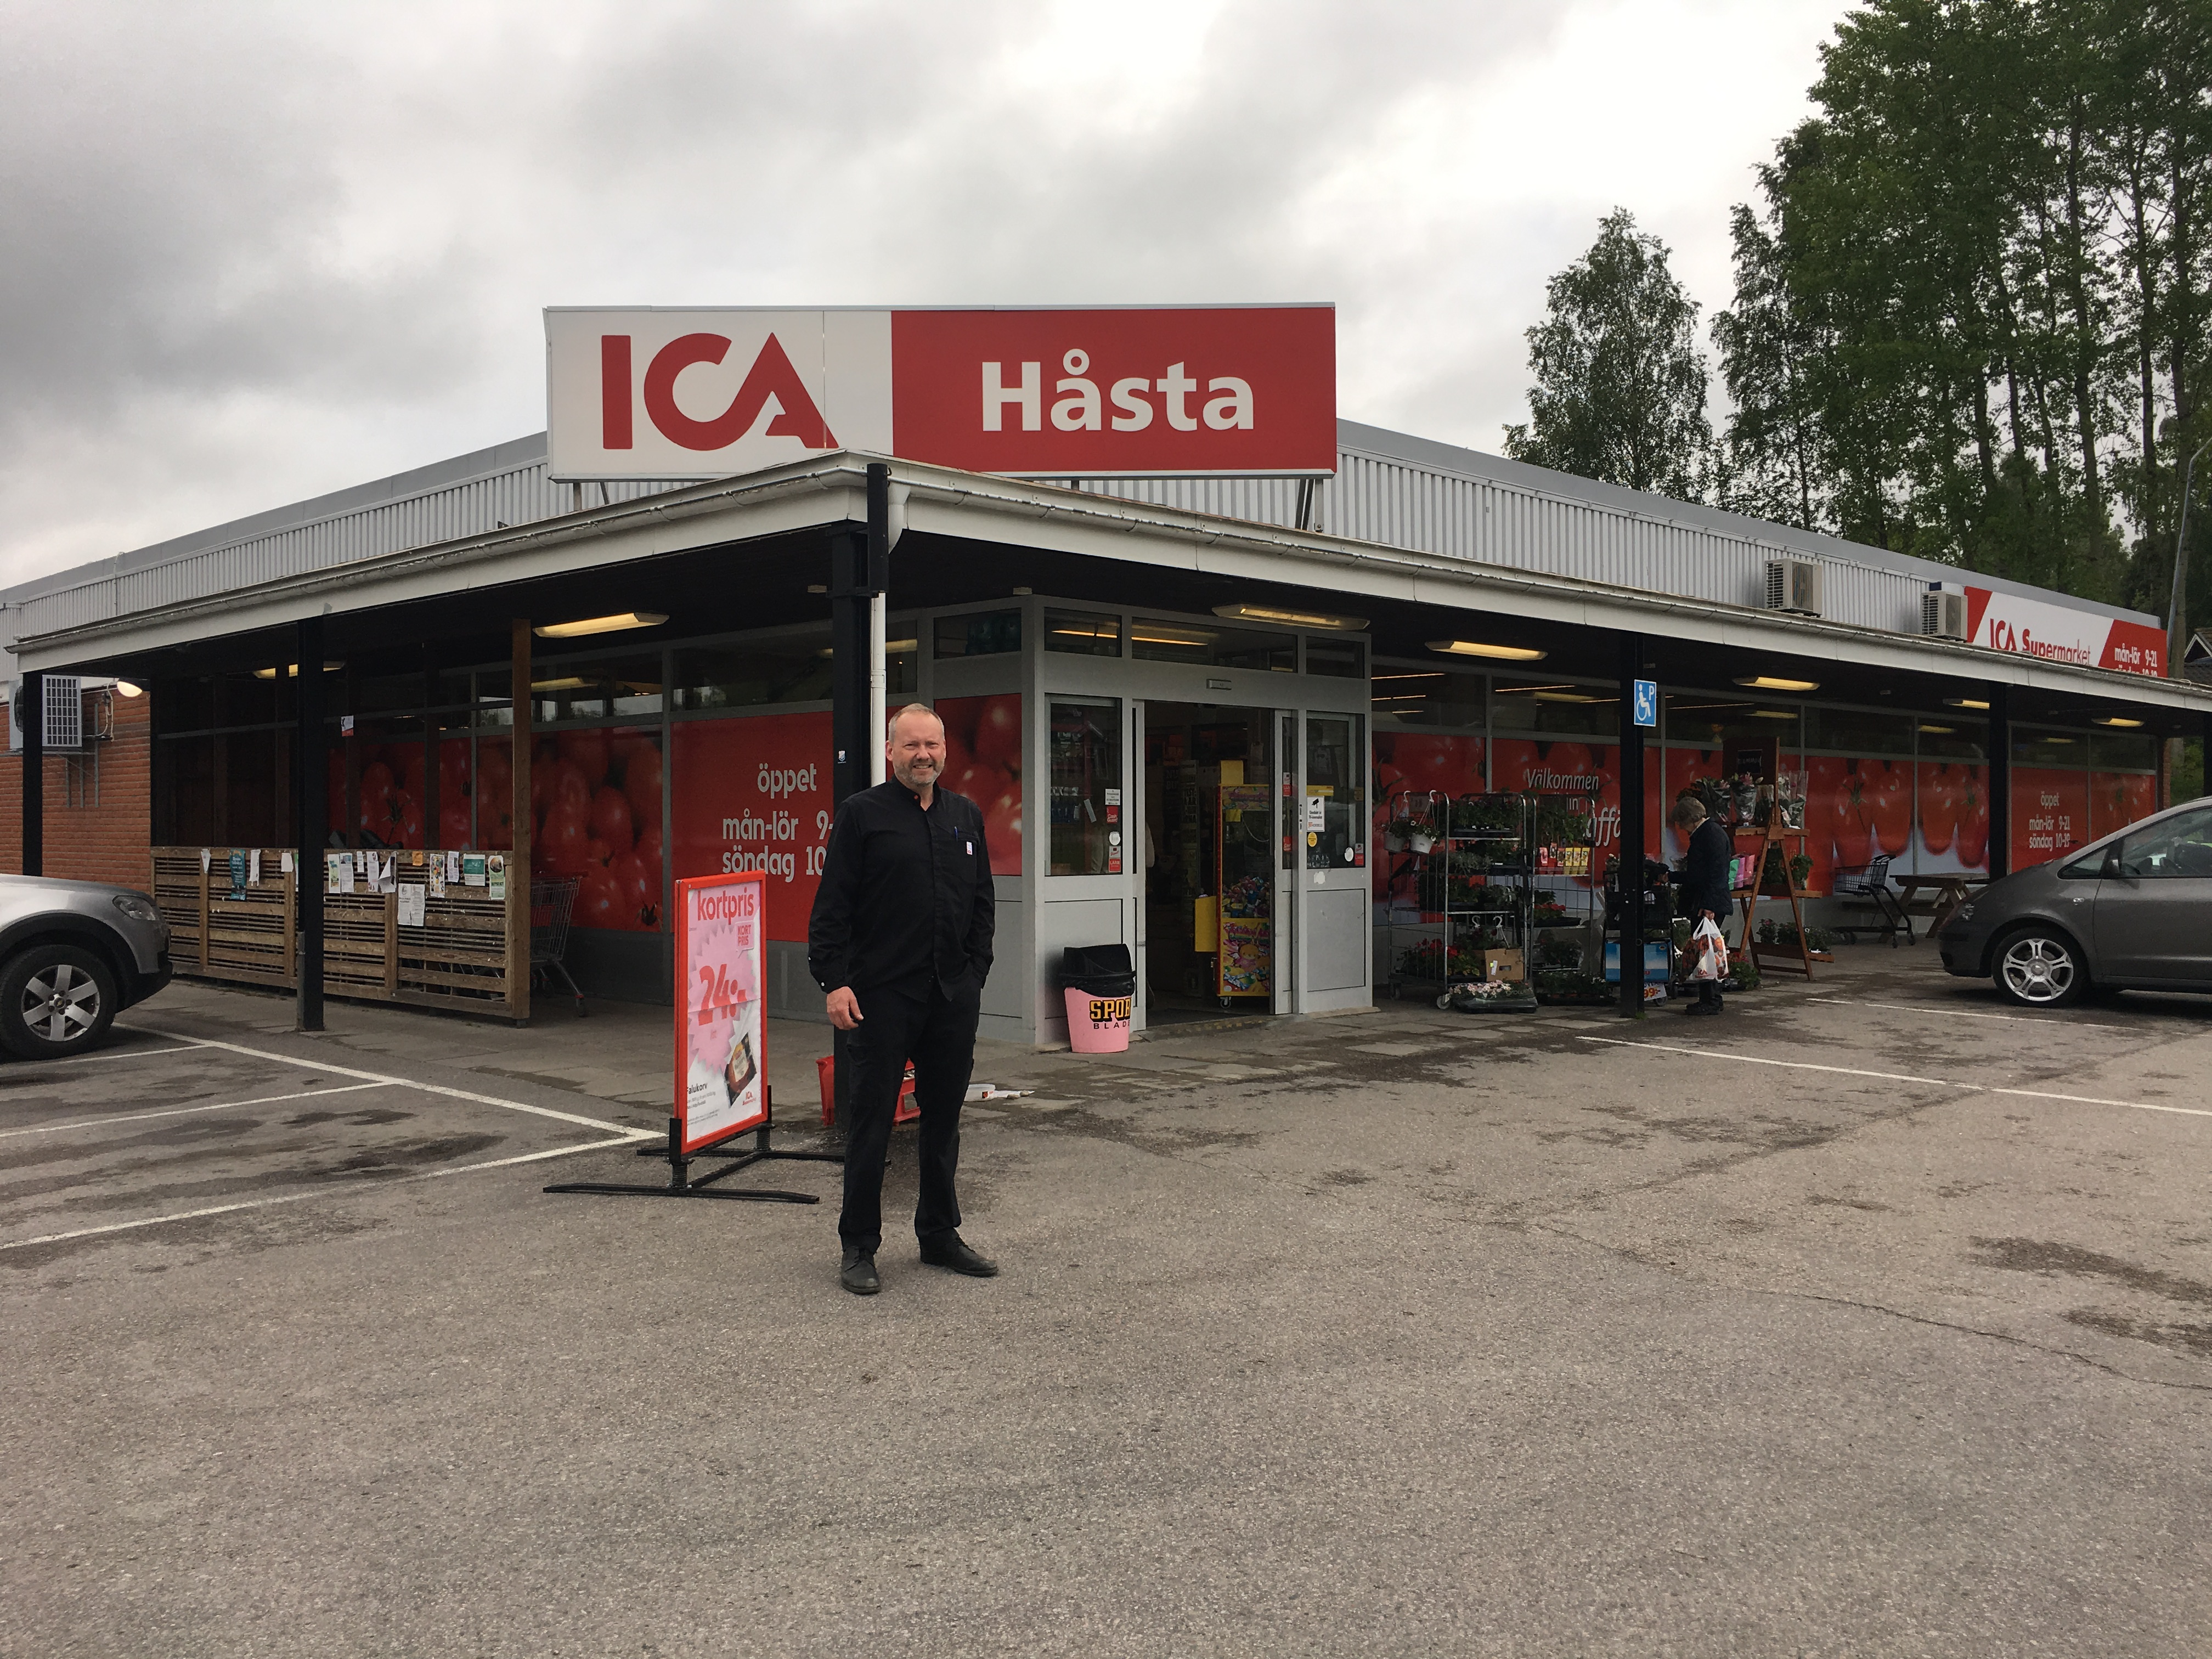 ica supermarket haga post